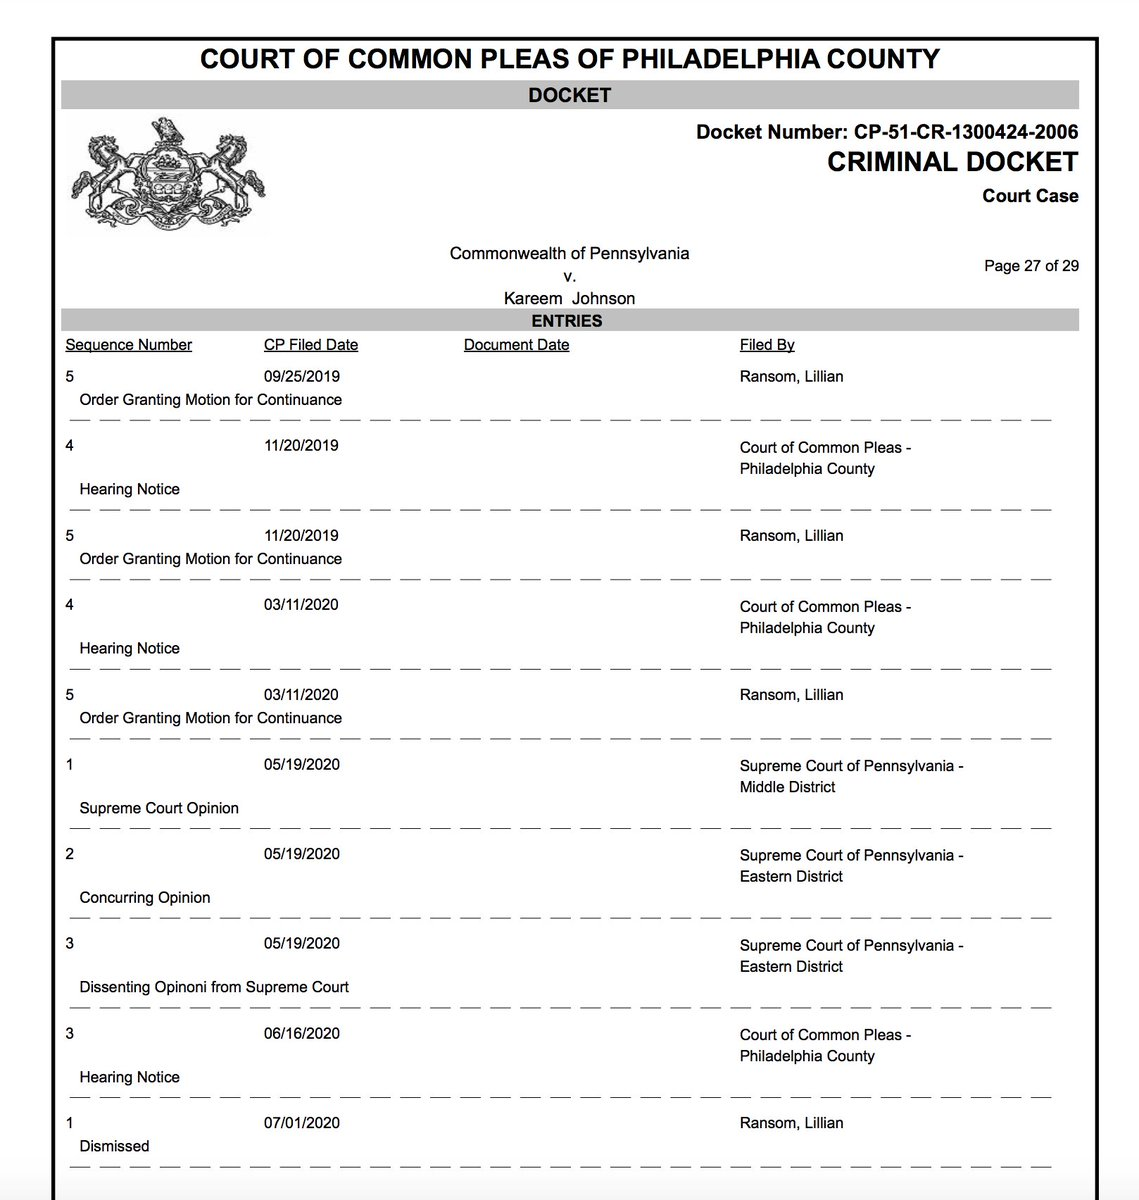 The #Philadelphia Court of Common Pleas has formally dismissed all charges against #KareemJohnson in his capital case, completing his exoneration. He is the 170th wrongly convicted/death sentenced person to be exonerated in the U.S. since 1973. @DPInfoCtr @WTIUSA #deathpenalty https://t.co/qS0127YLDh